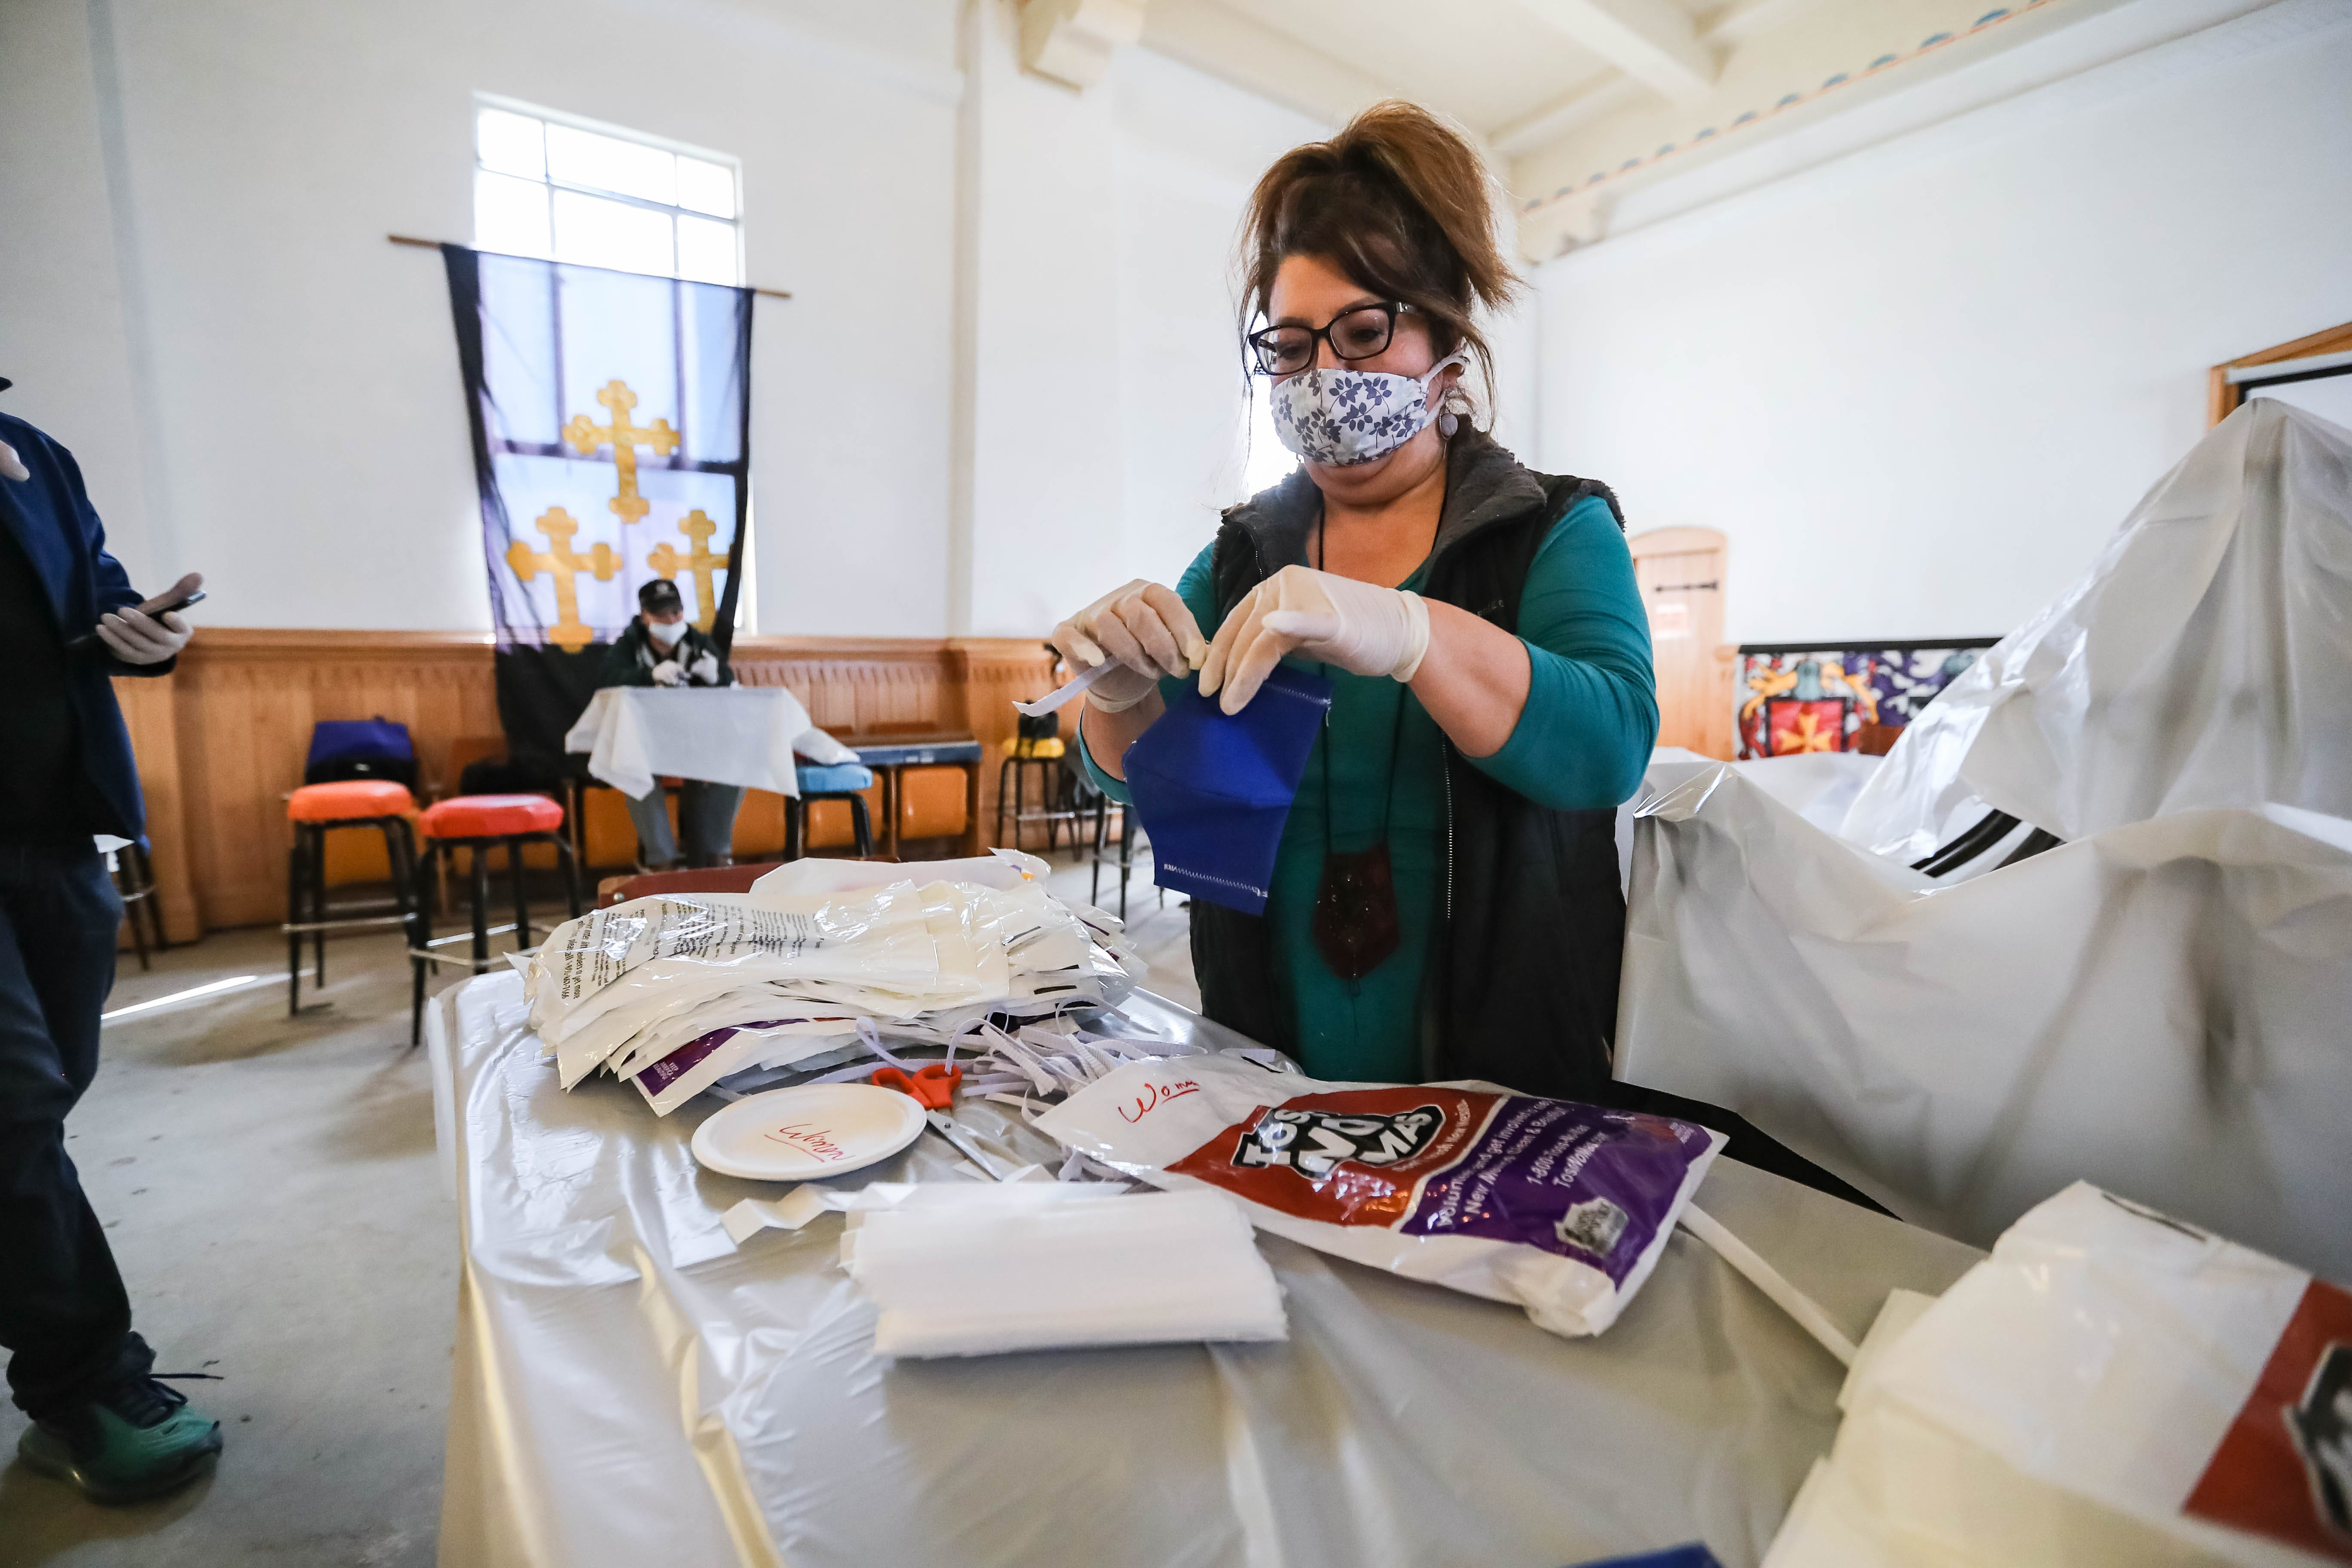 Volunteers make face masks at the historic Doña Ana County Courthouse in Downtown Las Cruces on Saturday, March 28, 2020.